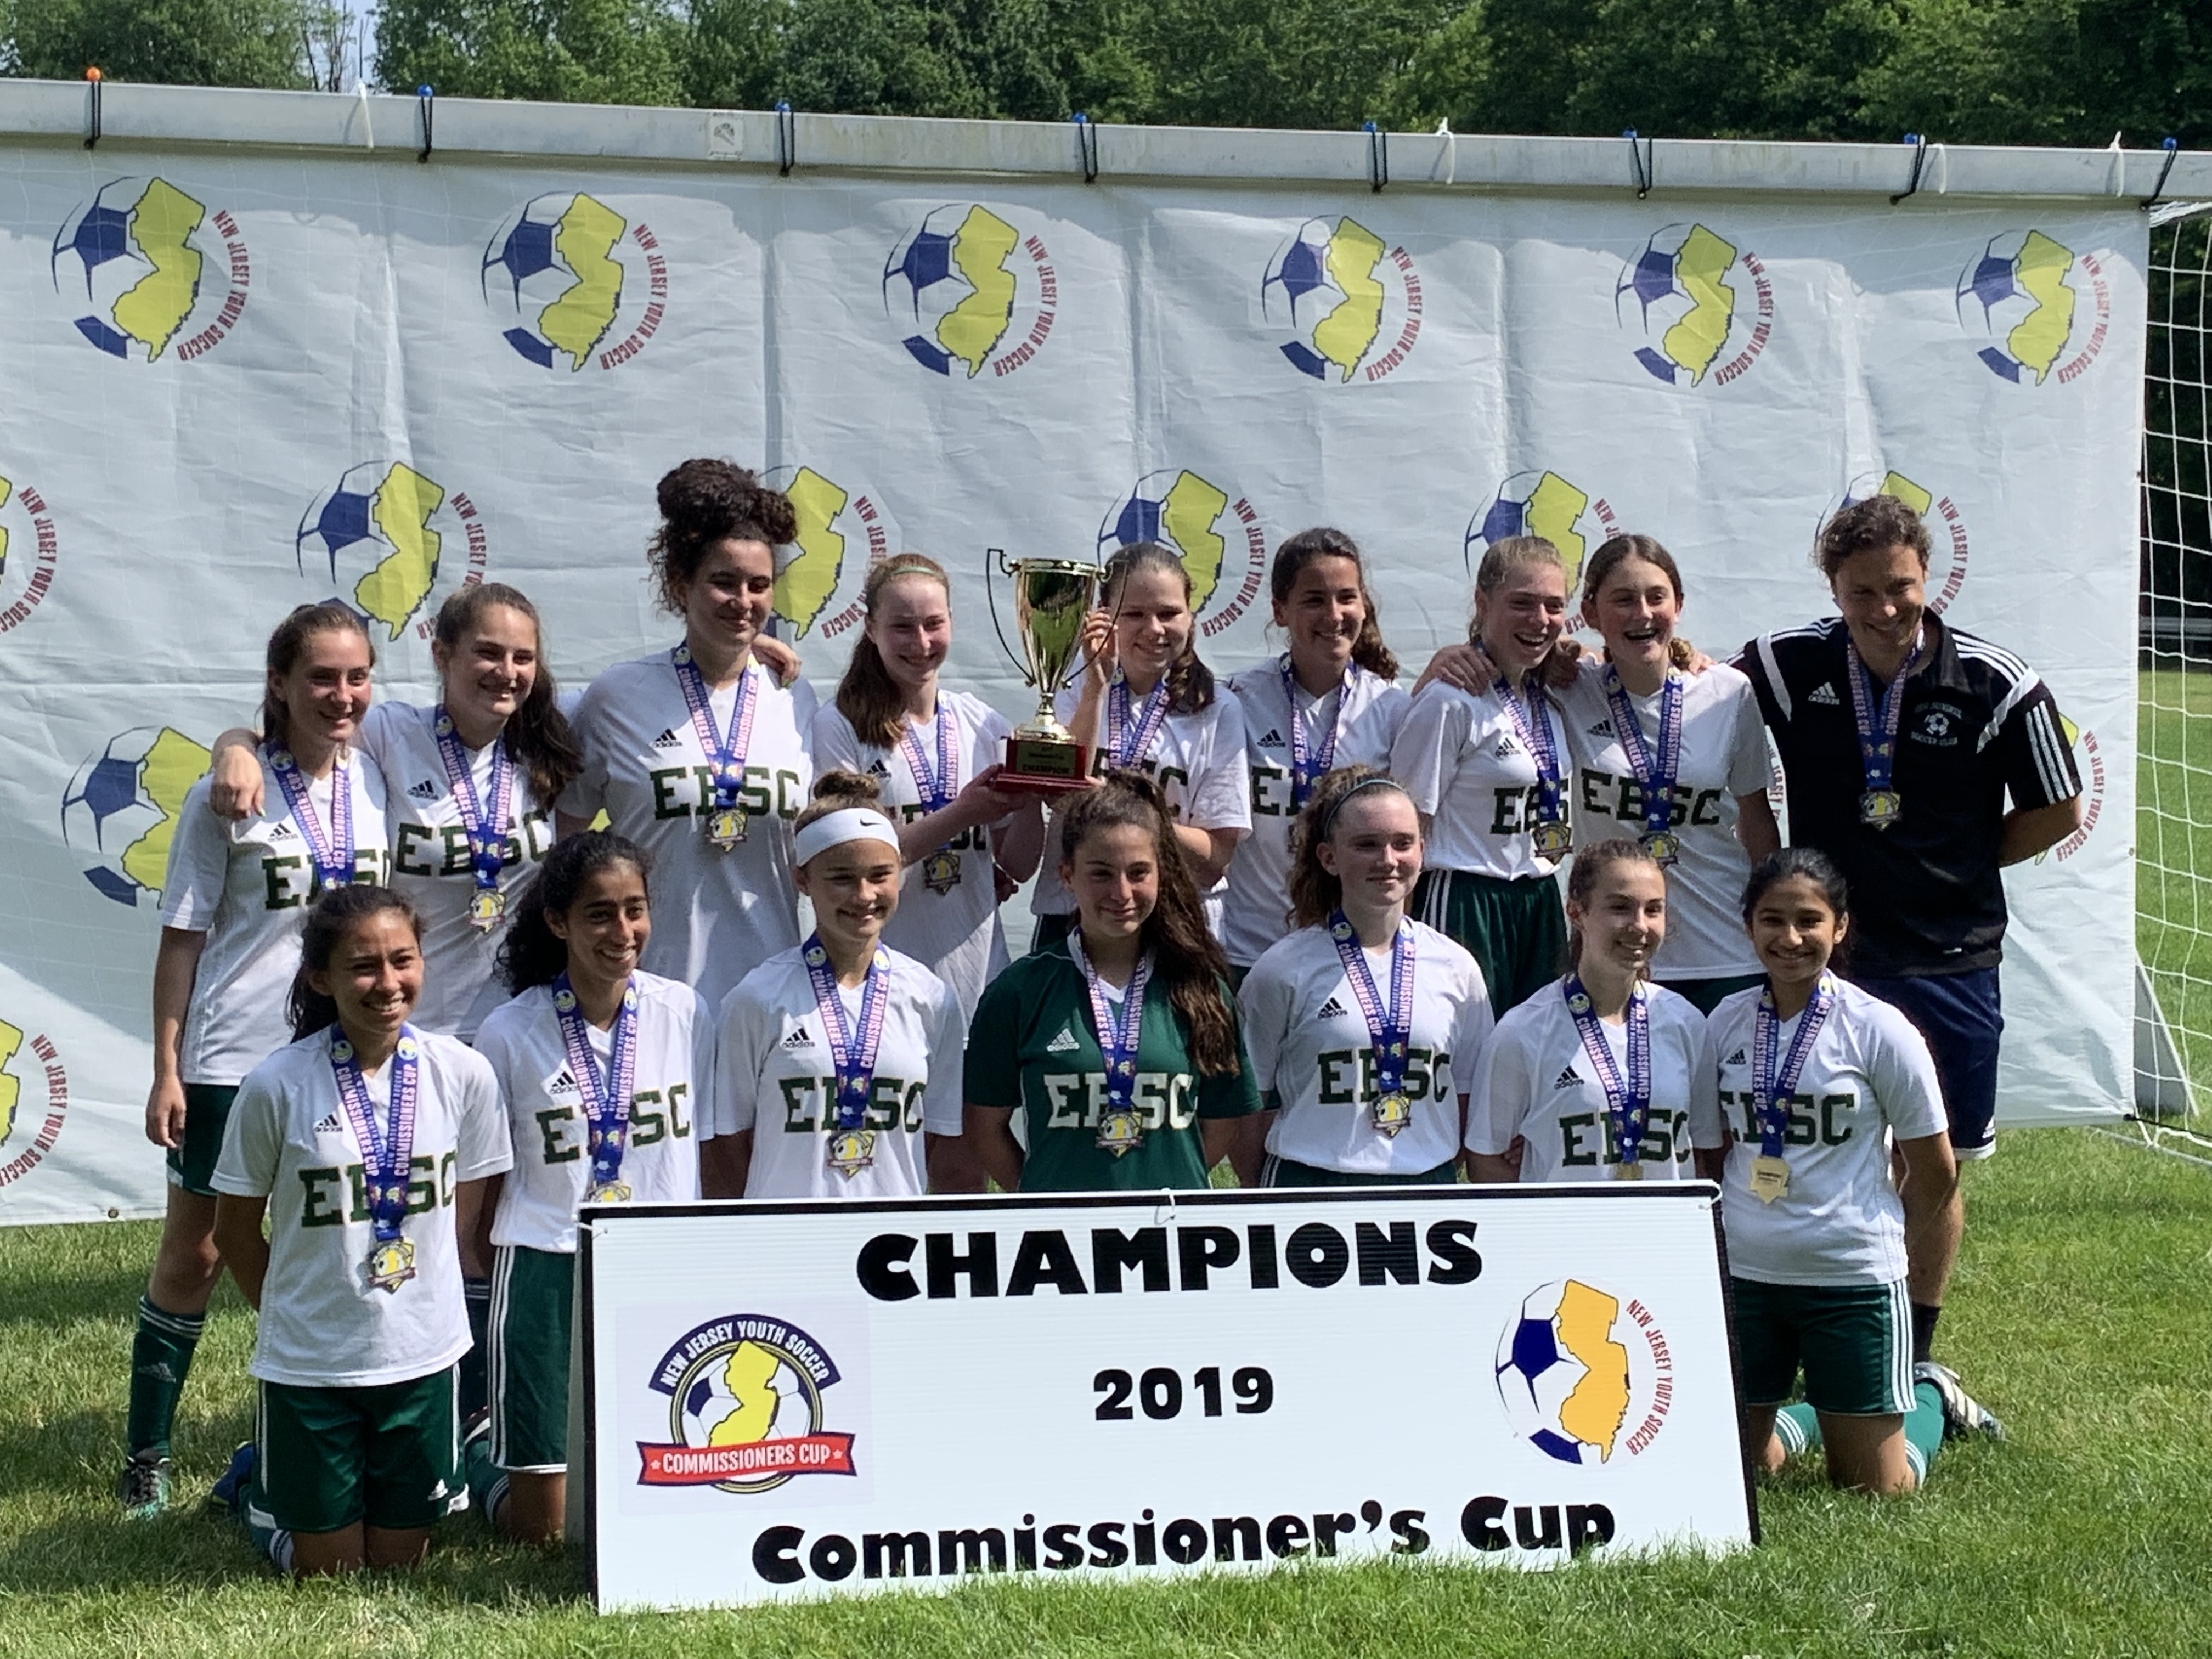 Congratulations to Coach Matt and the U15G Breakers Team